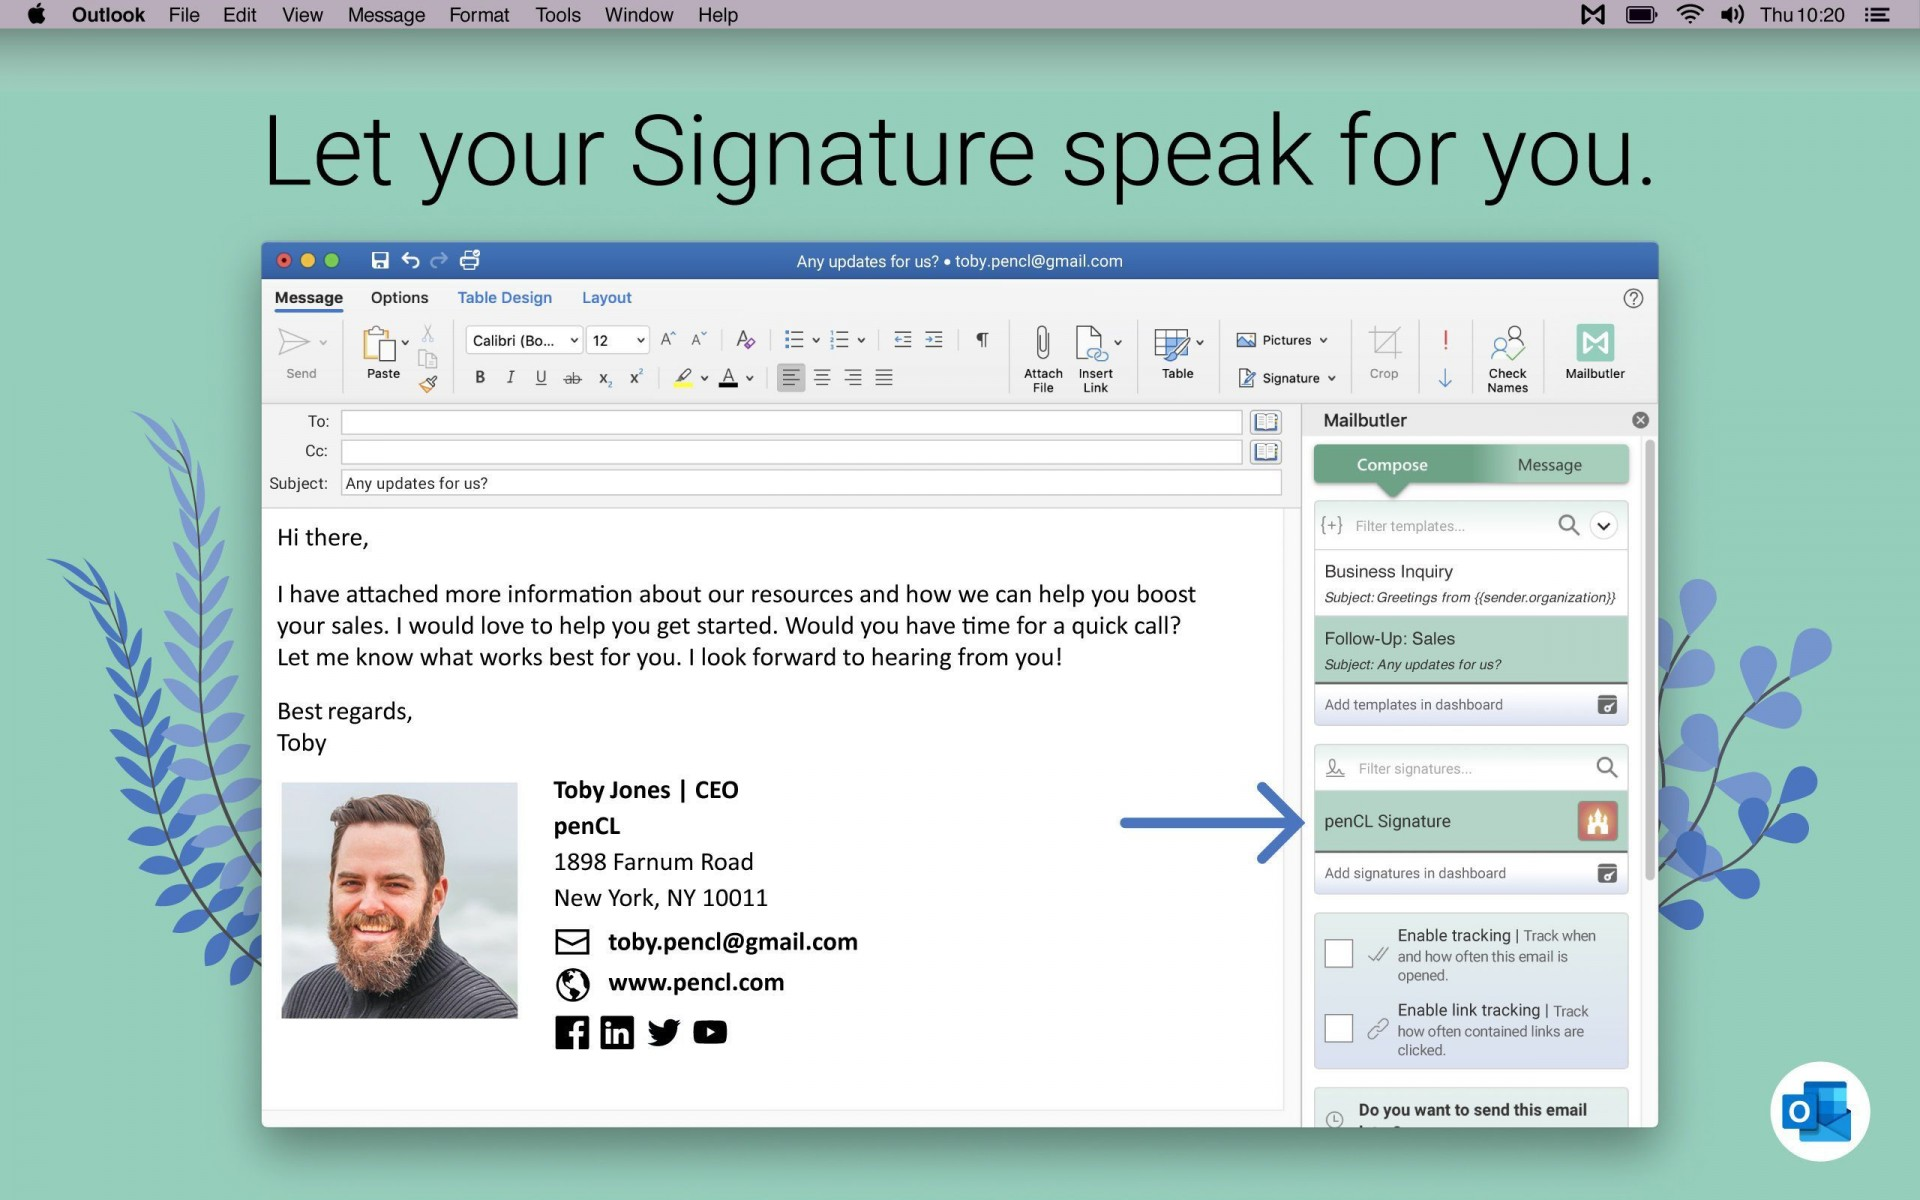 006 Incredible Email Signature Format For Outlook Design  Example Template Microsoft1920